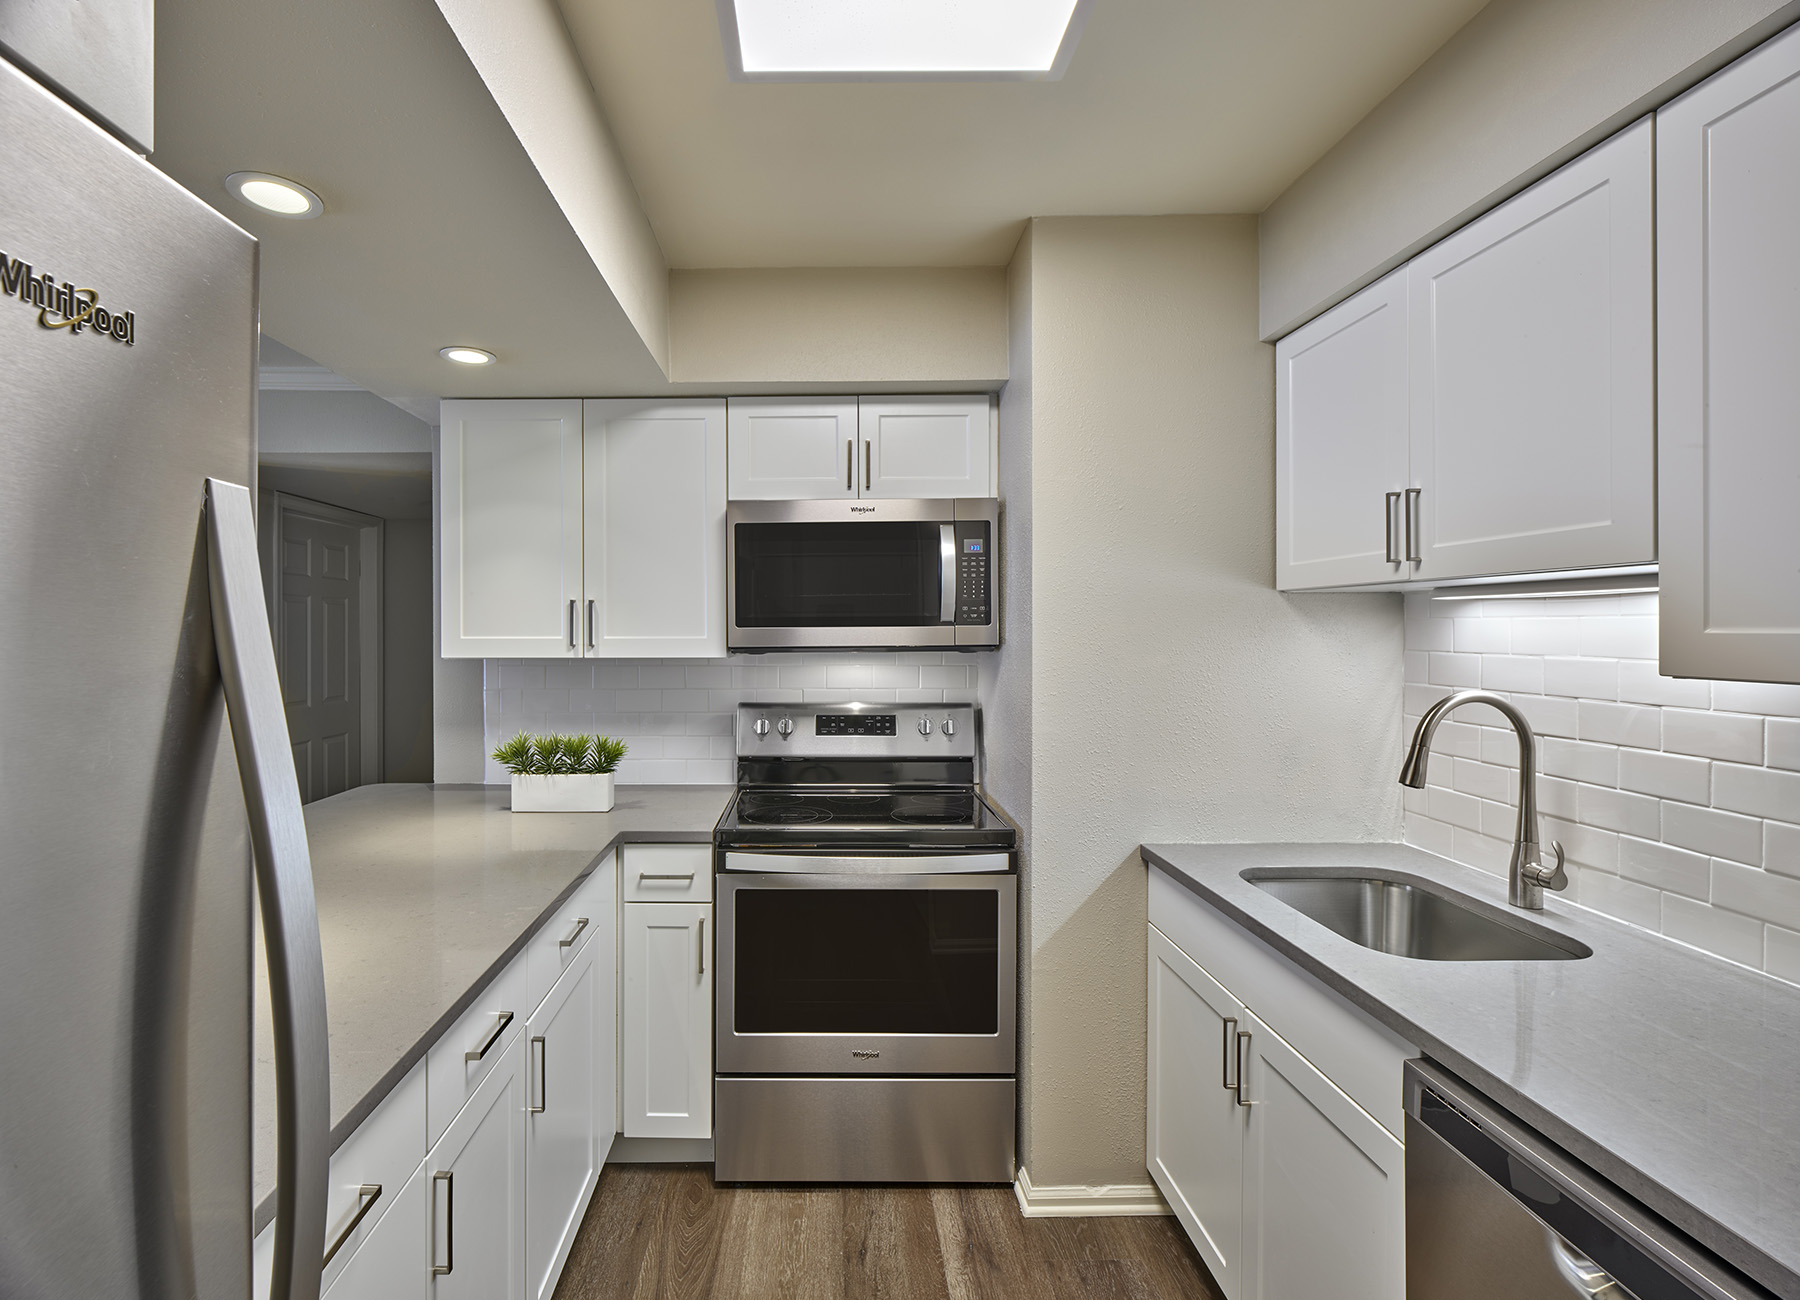 Galley kitchen with white cabinets and stainless steel appliances